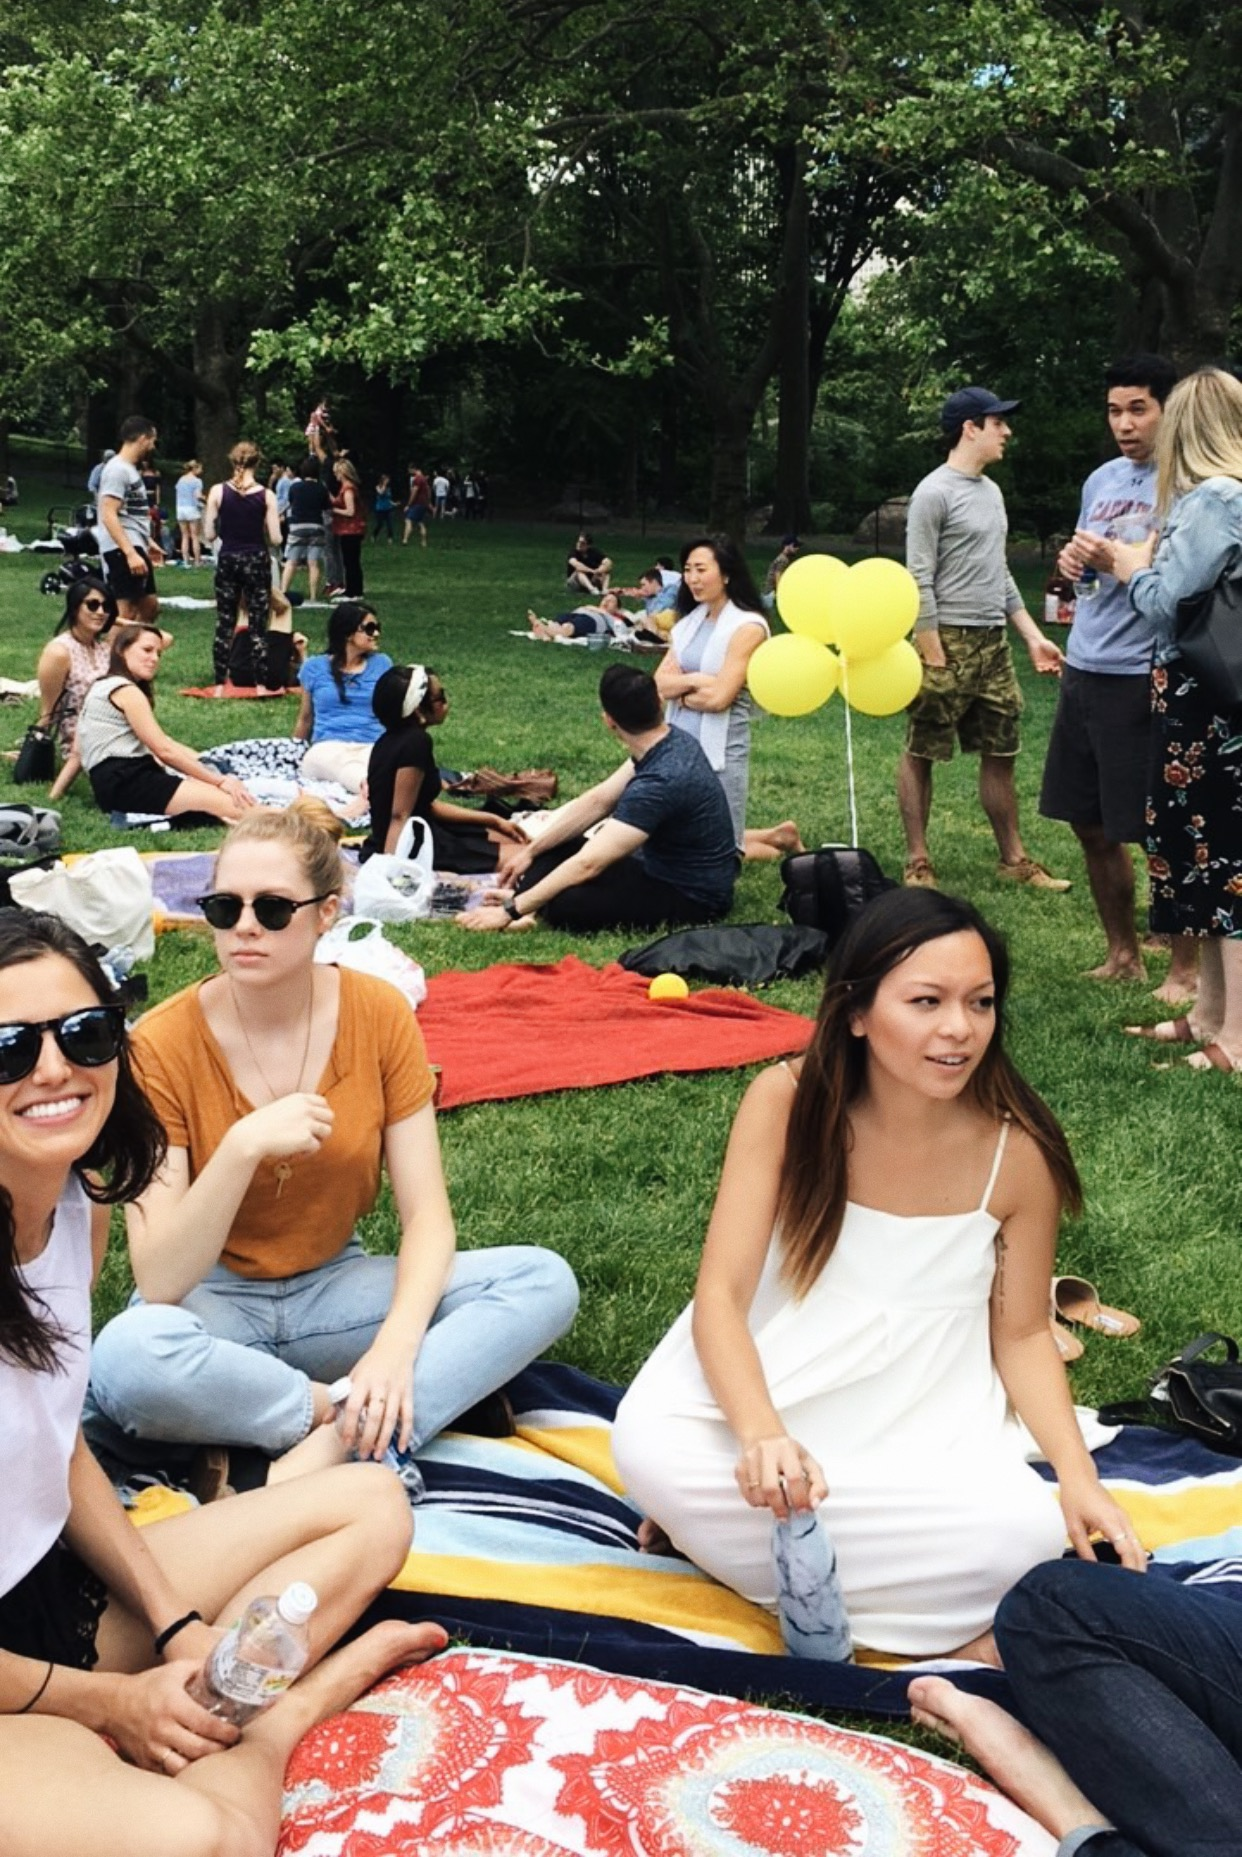 Meredith's church was having a get-together in Central Park.Pictured here is me blending in with the locals - which now includes me!